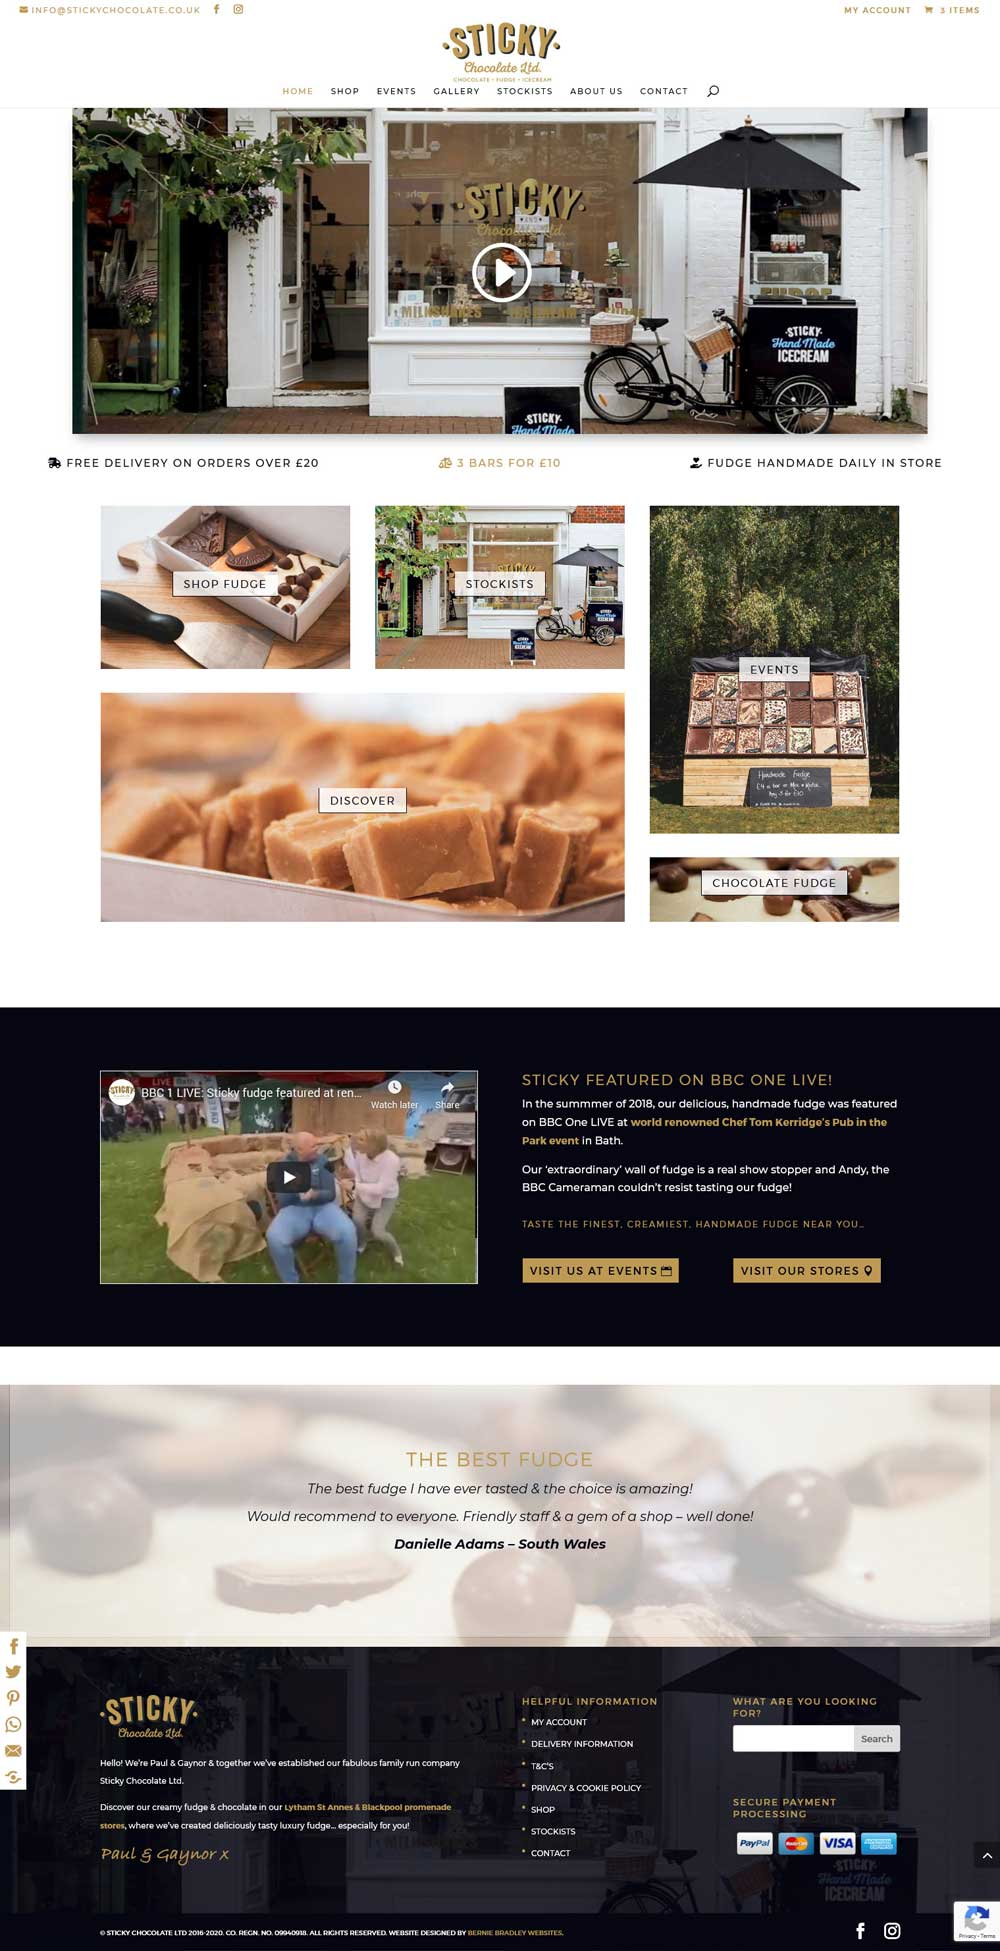 Sticky Chocolate Ltd eCommerce online store website design Home page